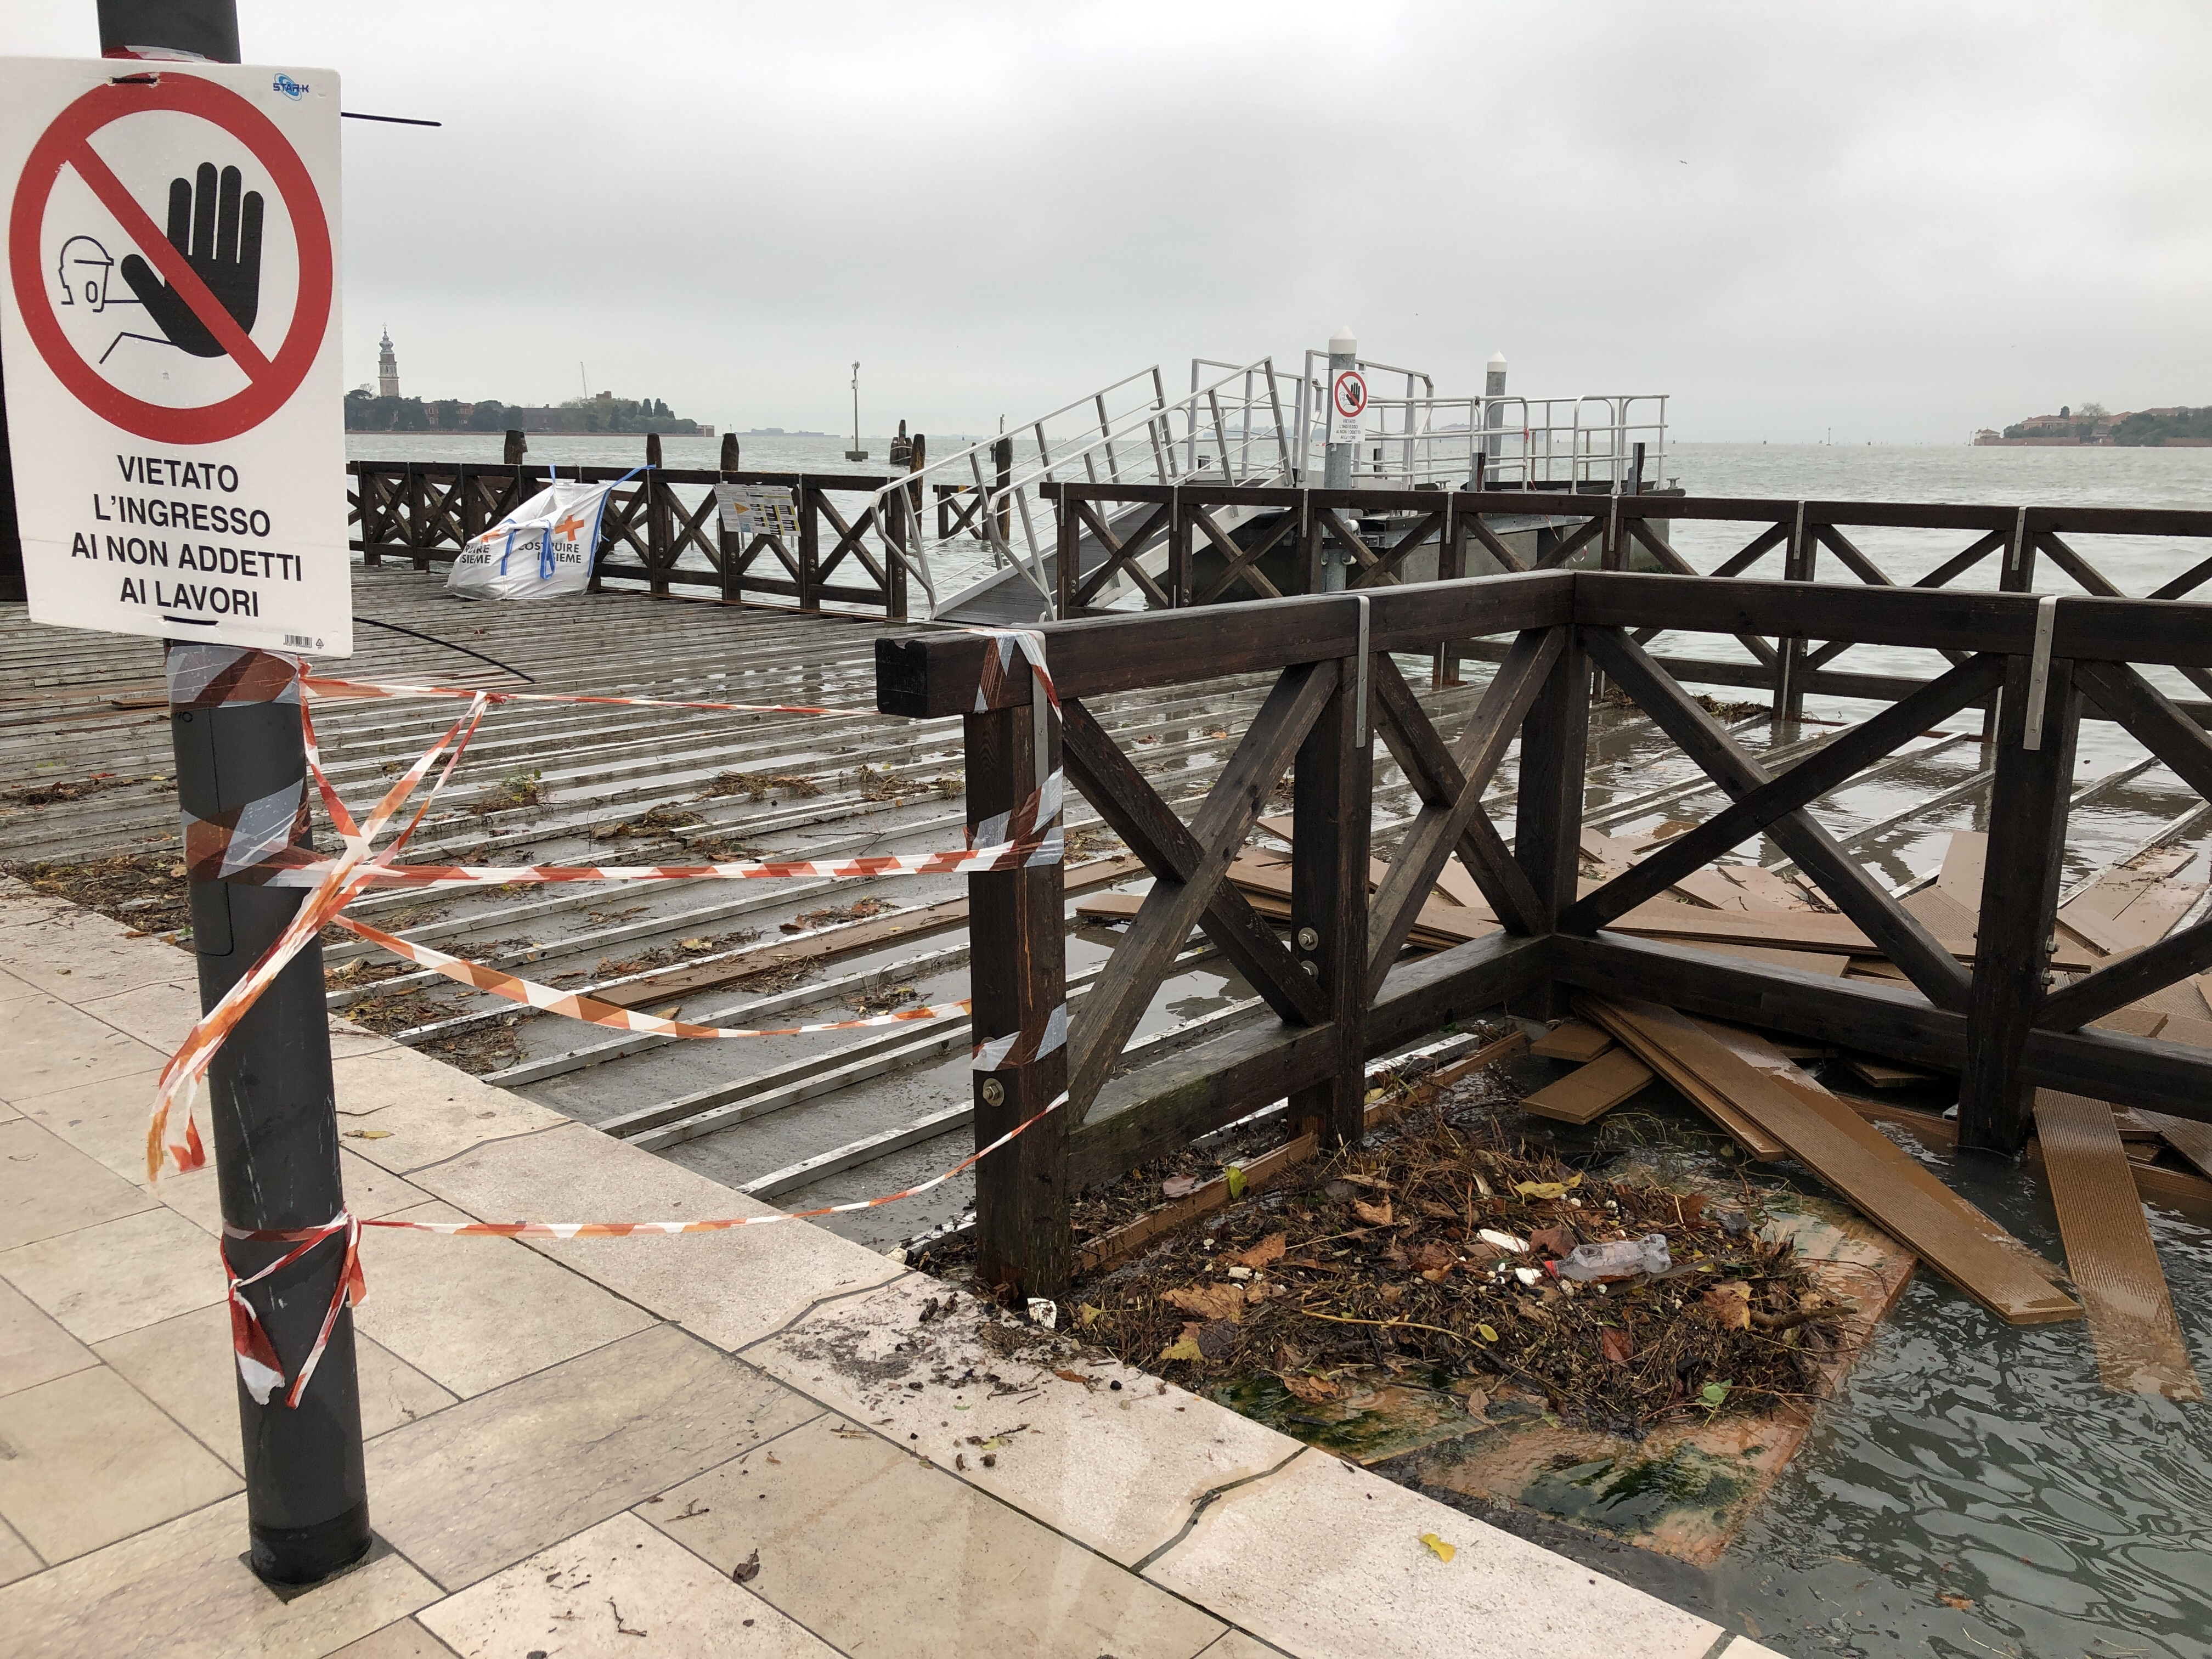 Lido di Venezia - a big mess after the storm